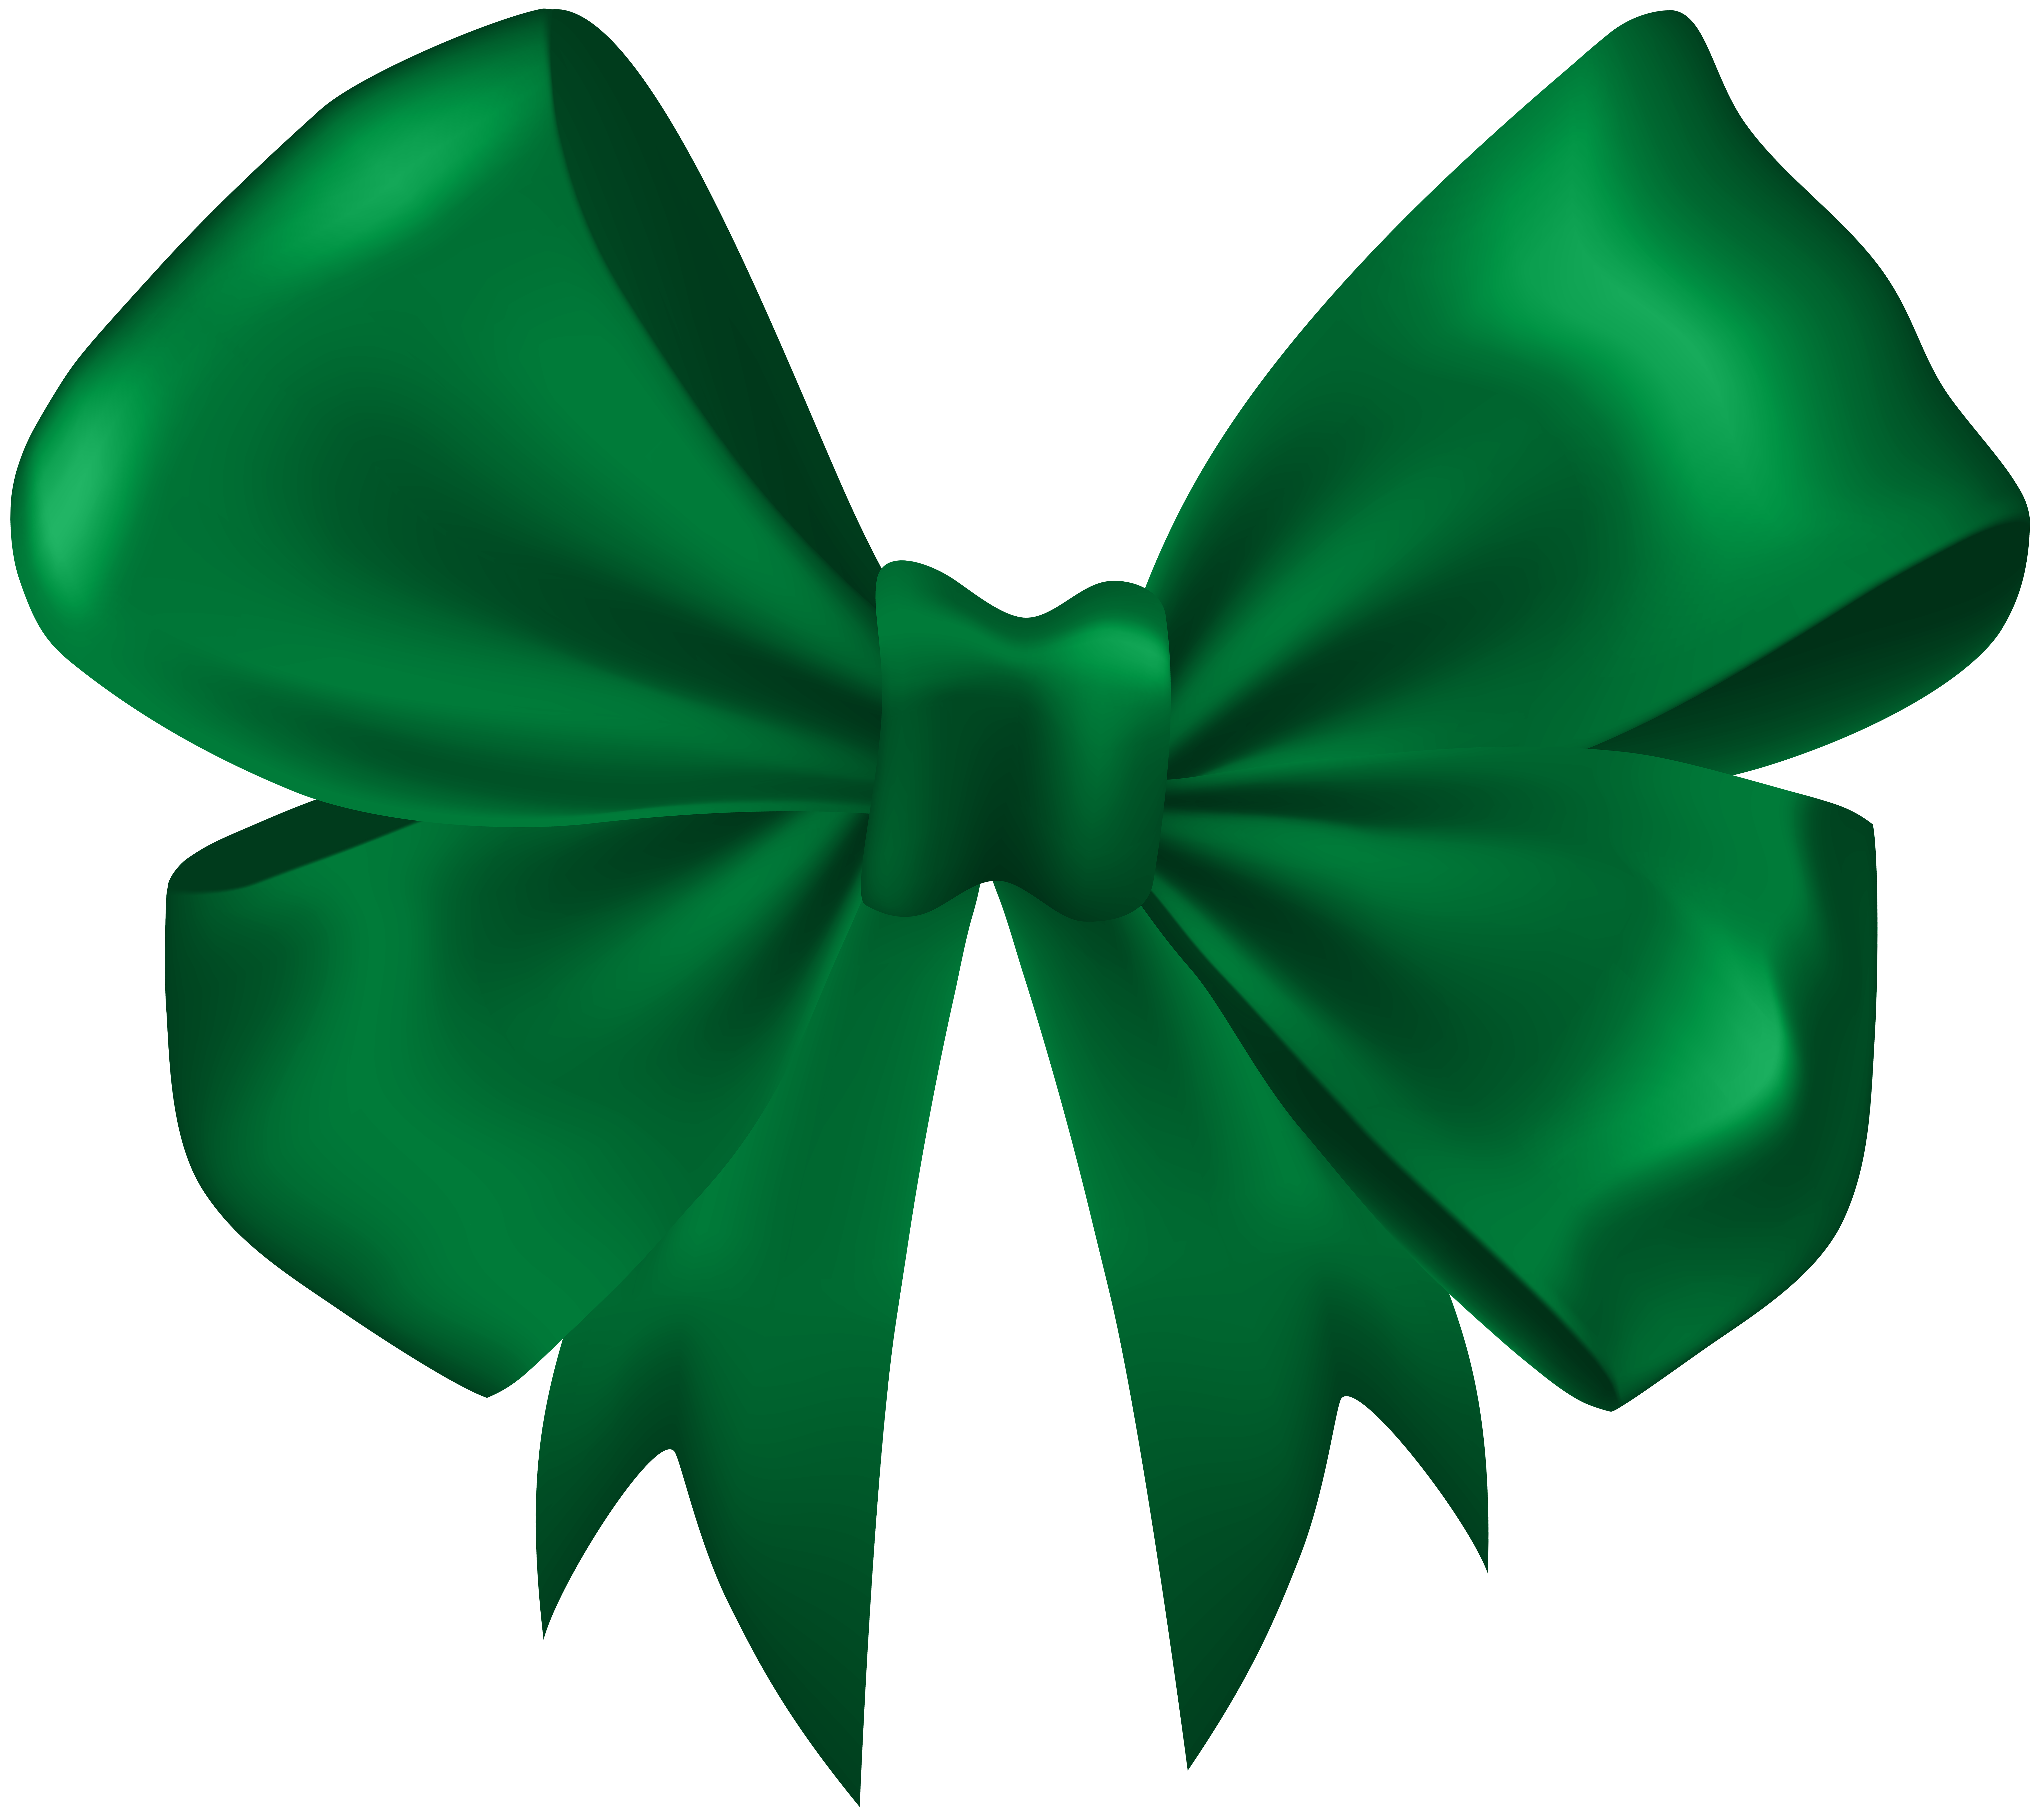 Green Beautiful Bow Png Clip Art Image Gallery Yopriceville High Quality Images And Transparent Png Free Clipart Free Clip Art Clip Art Bows